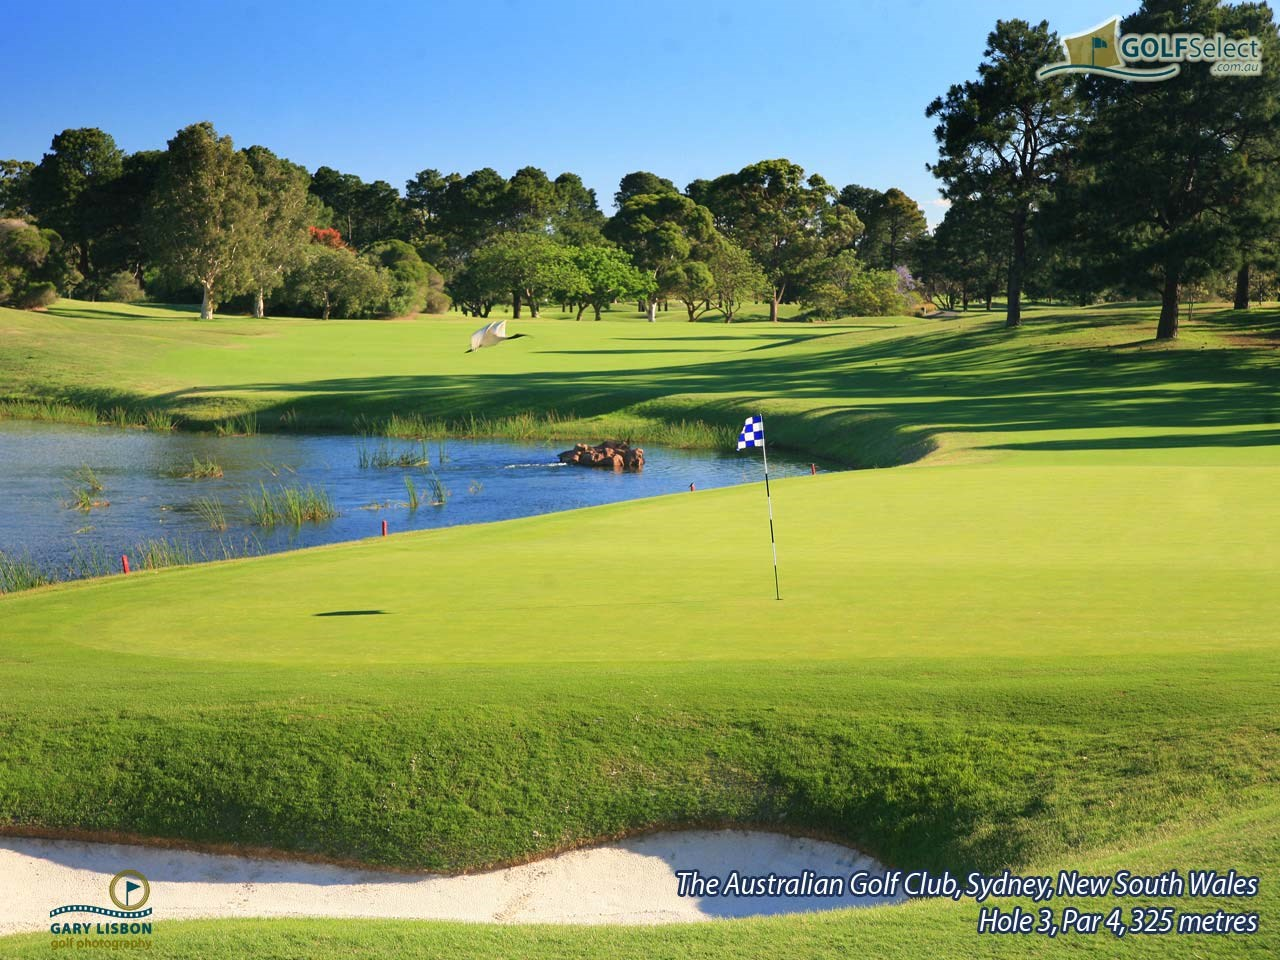 The Australian Golf Club Hole 3, Par 4, 279 metres